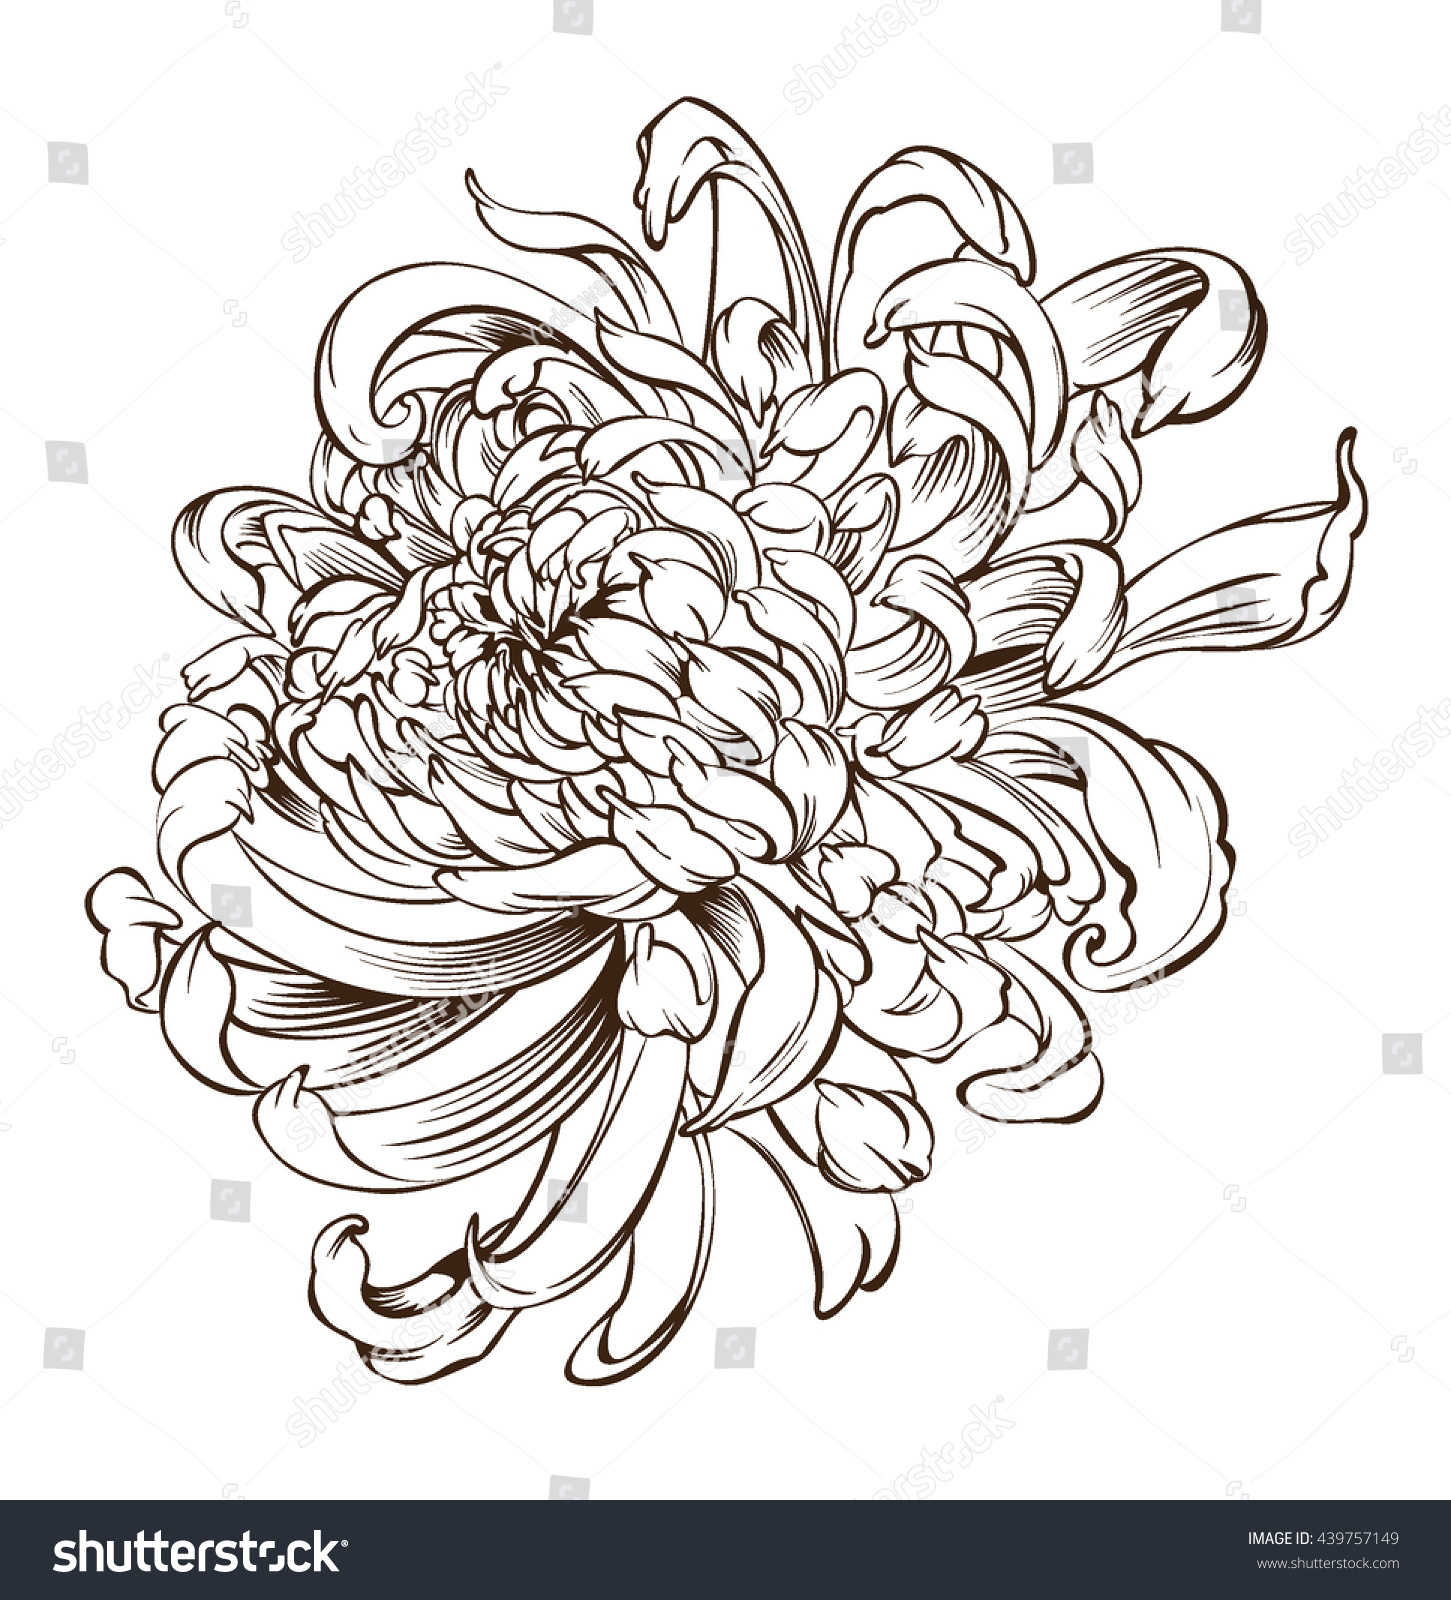 Royalty Free Japanese Flower Tattoo Chrysanthemum 439757149 Stock